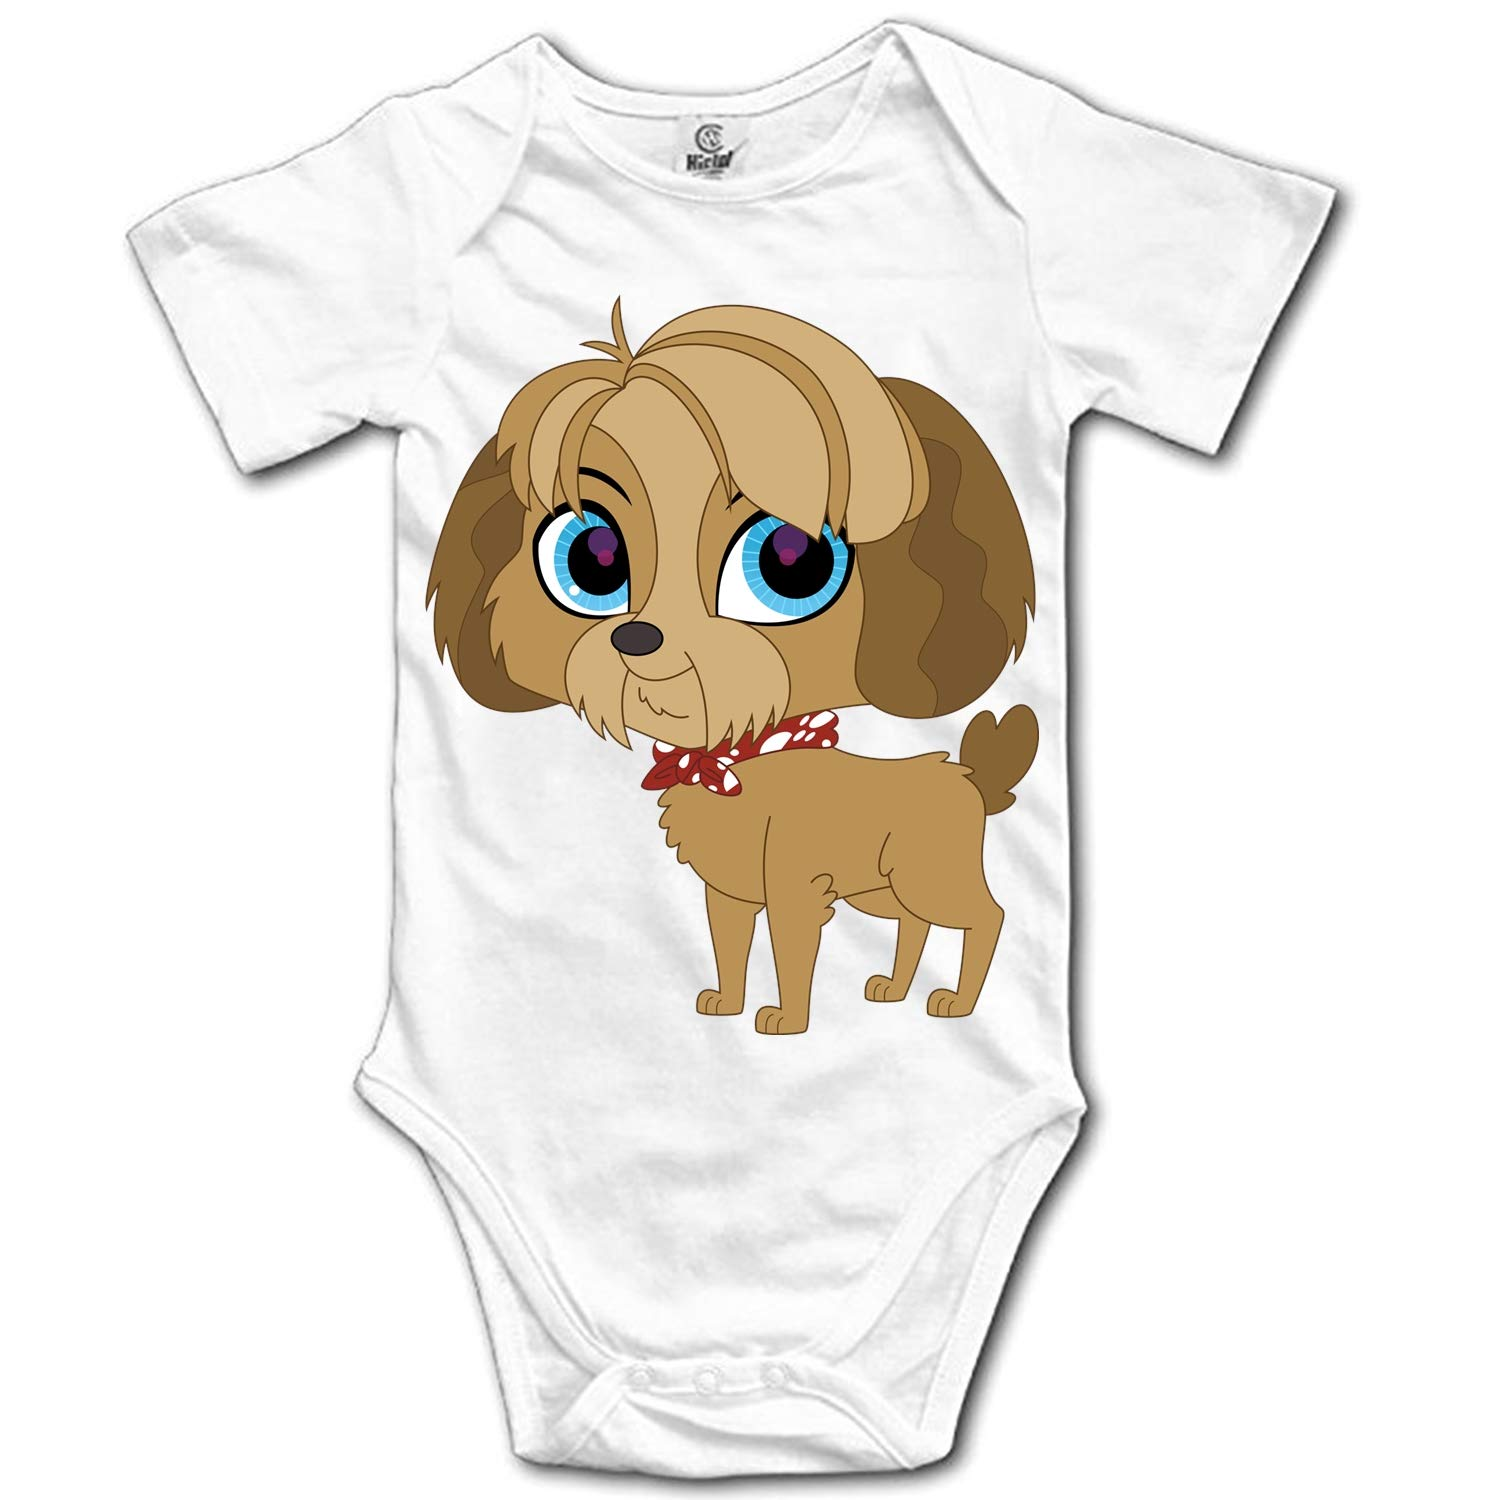 ZWETTET Cute Dog Baby Gifts Bodysuits Short Sleeve